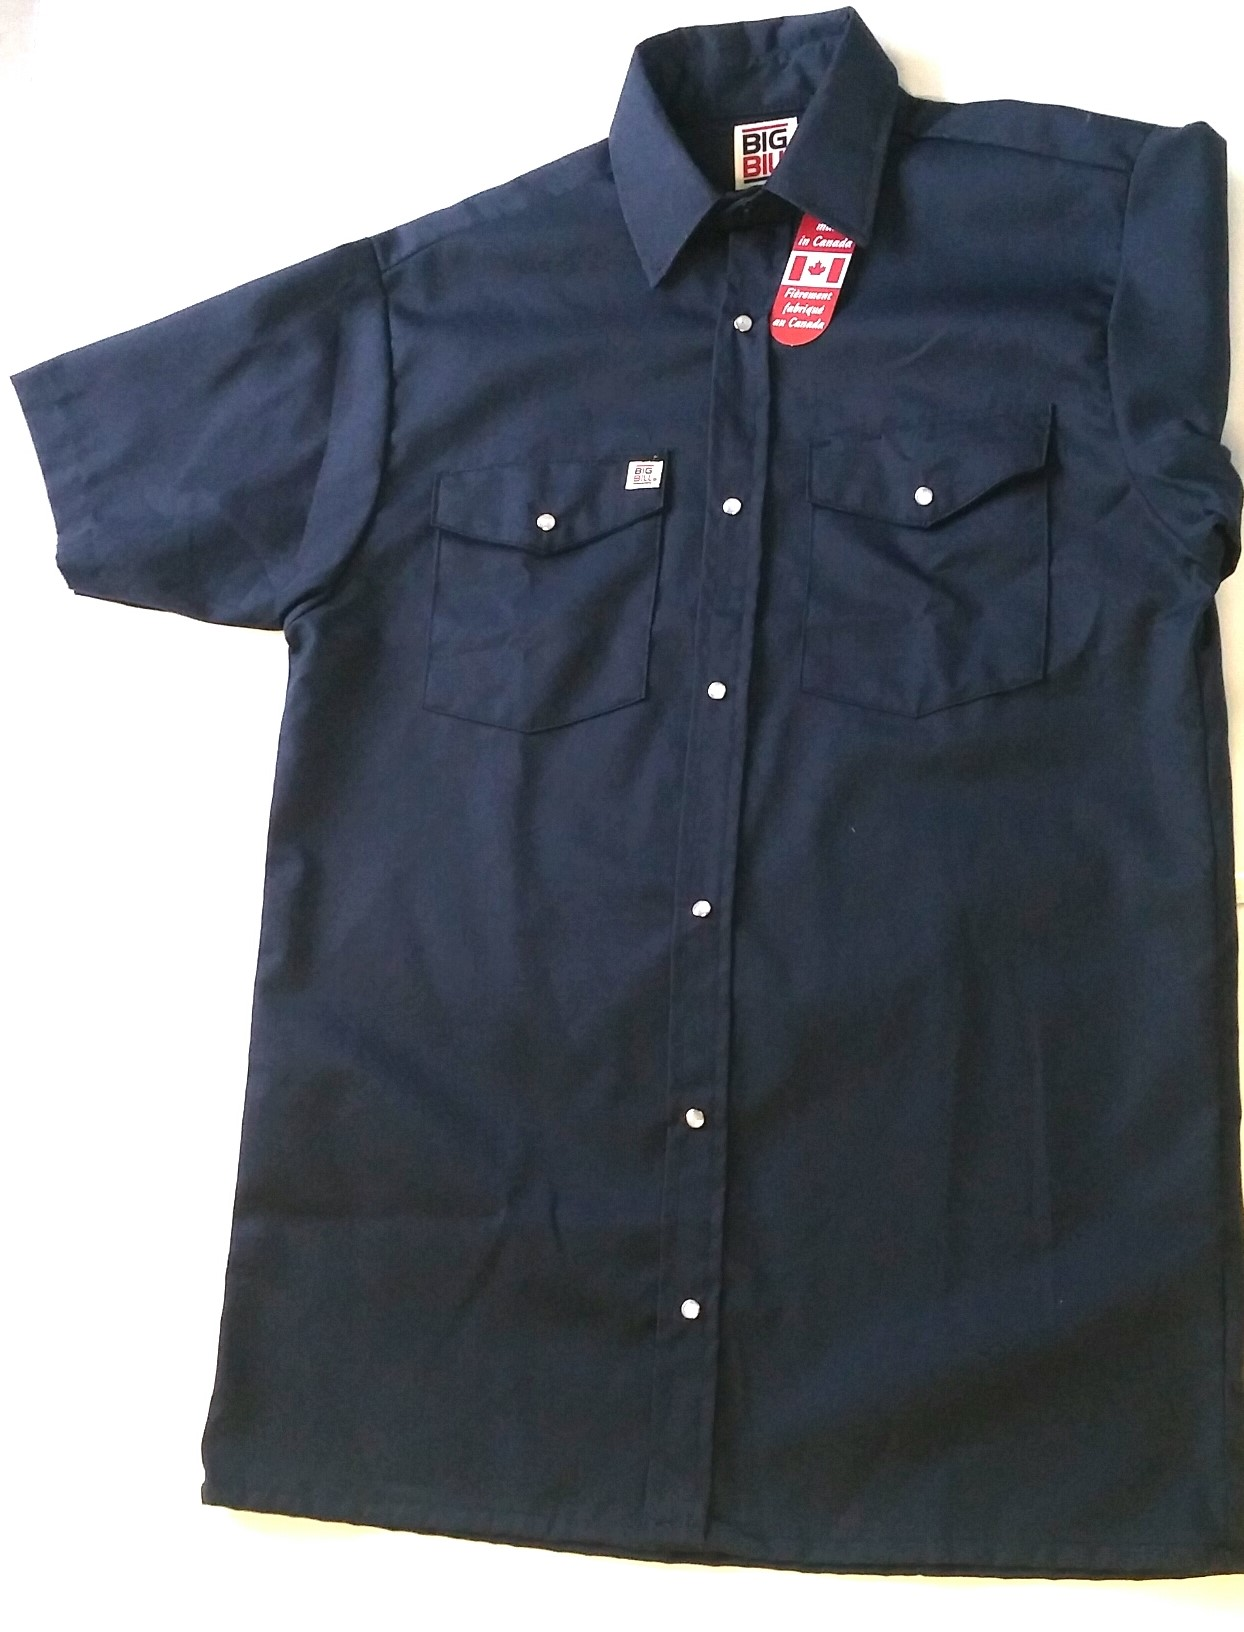 Big bill snap work shirt short sleeve (237)